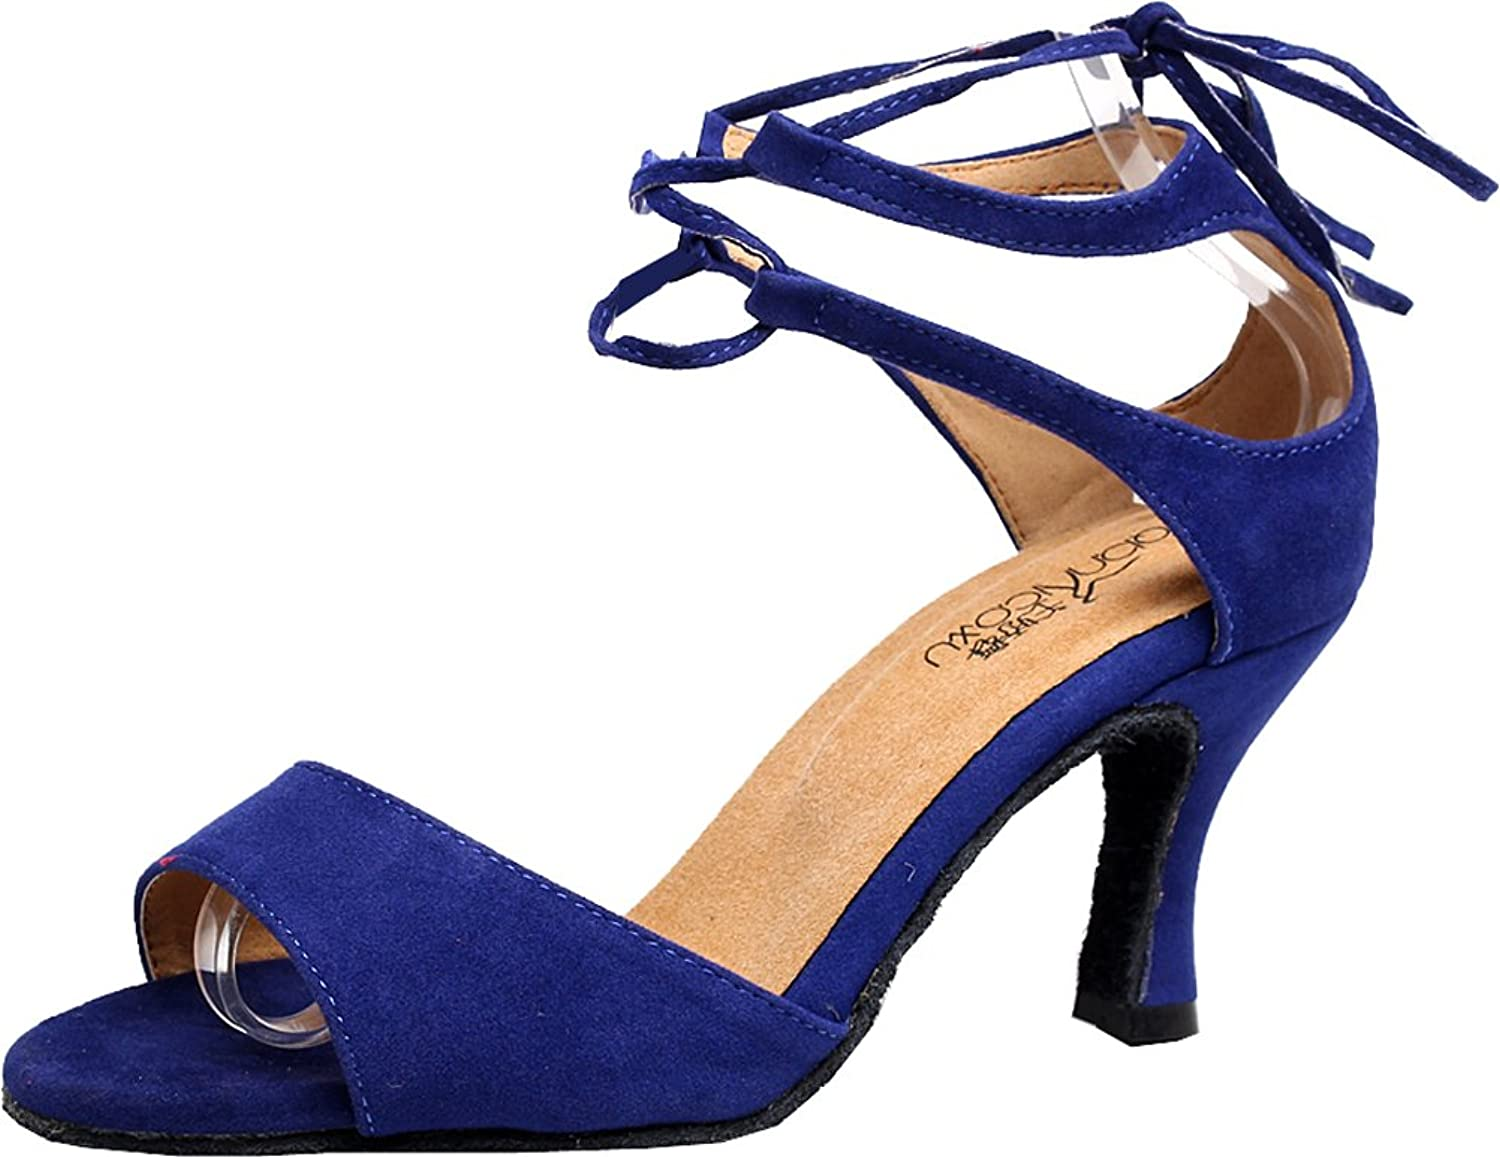 Abby AQ-5012 Womens Custom Heel Open-toe Simple Chic Ankle Straps Soft Sole Cloth Dance-shoes